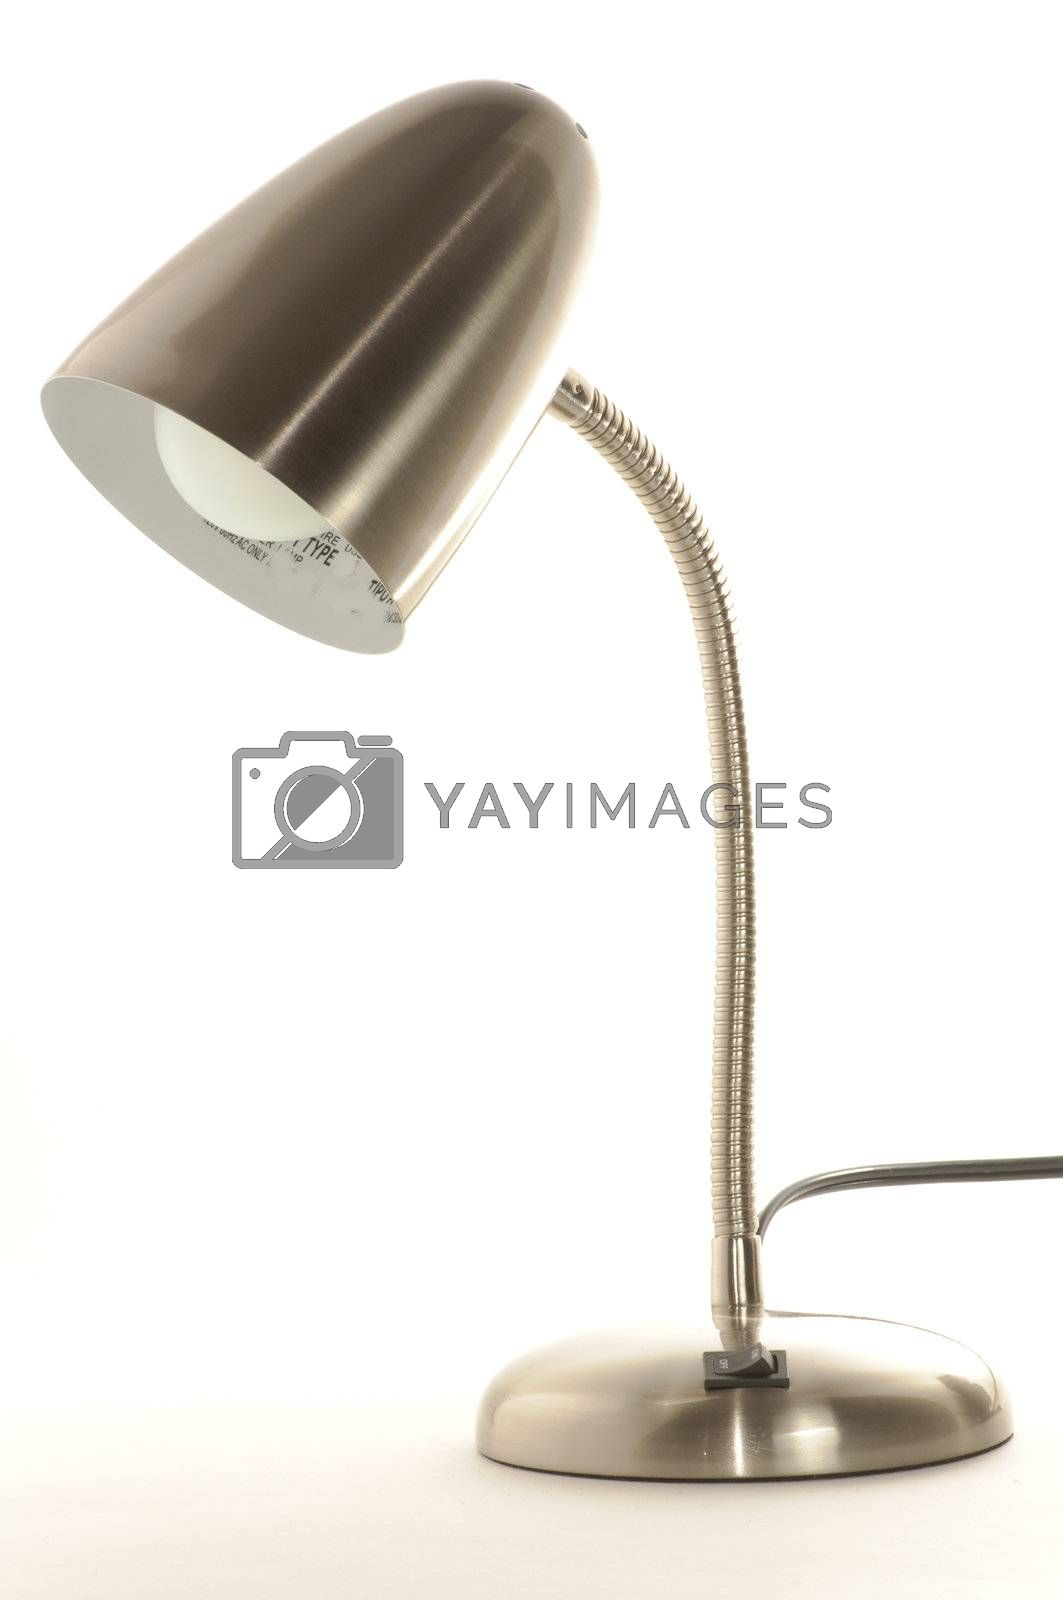 Royalty free image of Lamp by CHR1